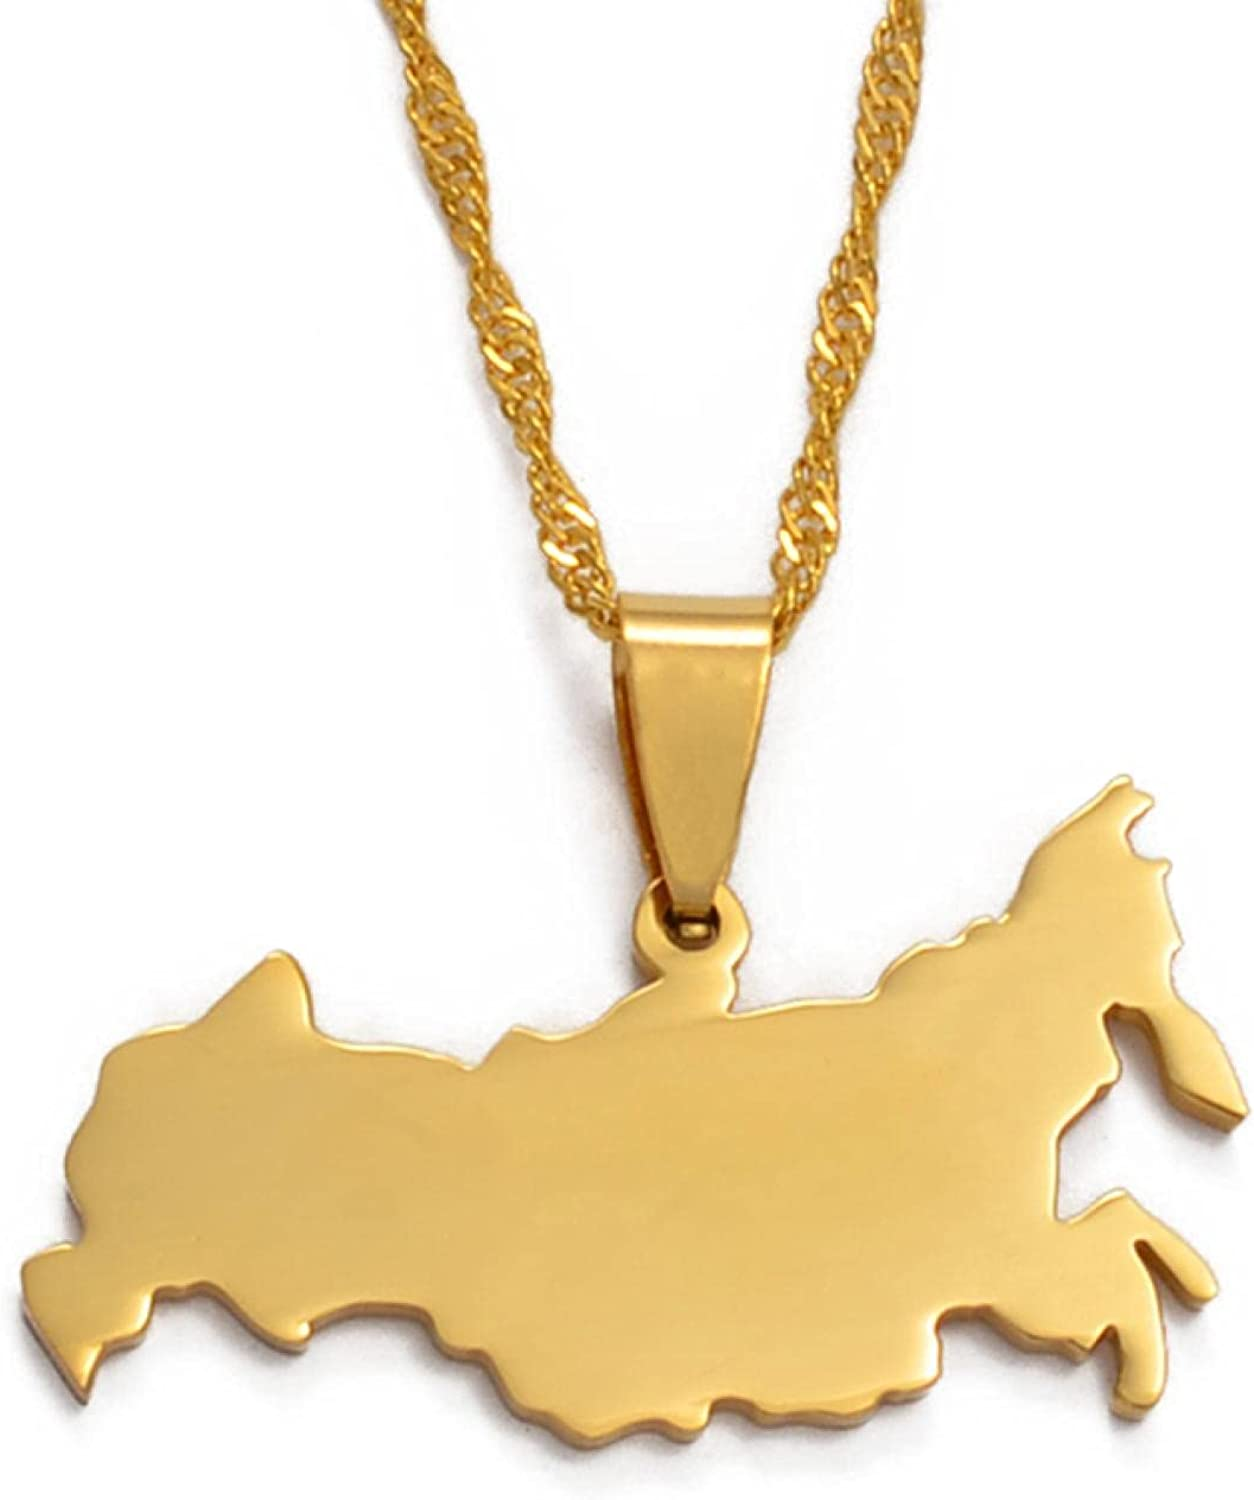 Russia Map Pendant Necklaces The Jewelr Charm In a popularity Ranking TOP4 Russian Federation